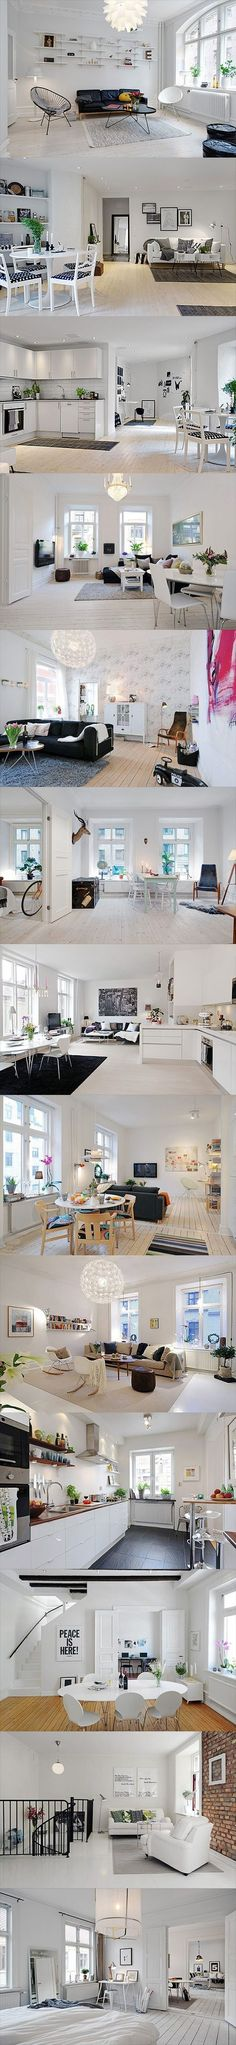 Beautiful & Stylish Scandinavian interior design inspiration | http://roomdesign14.blogspot.com